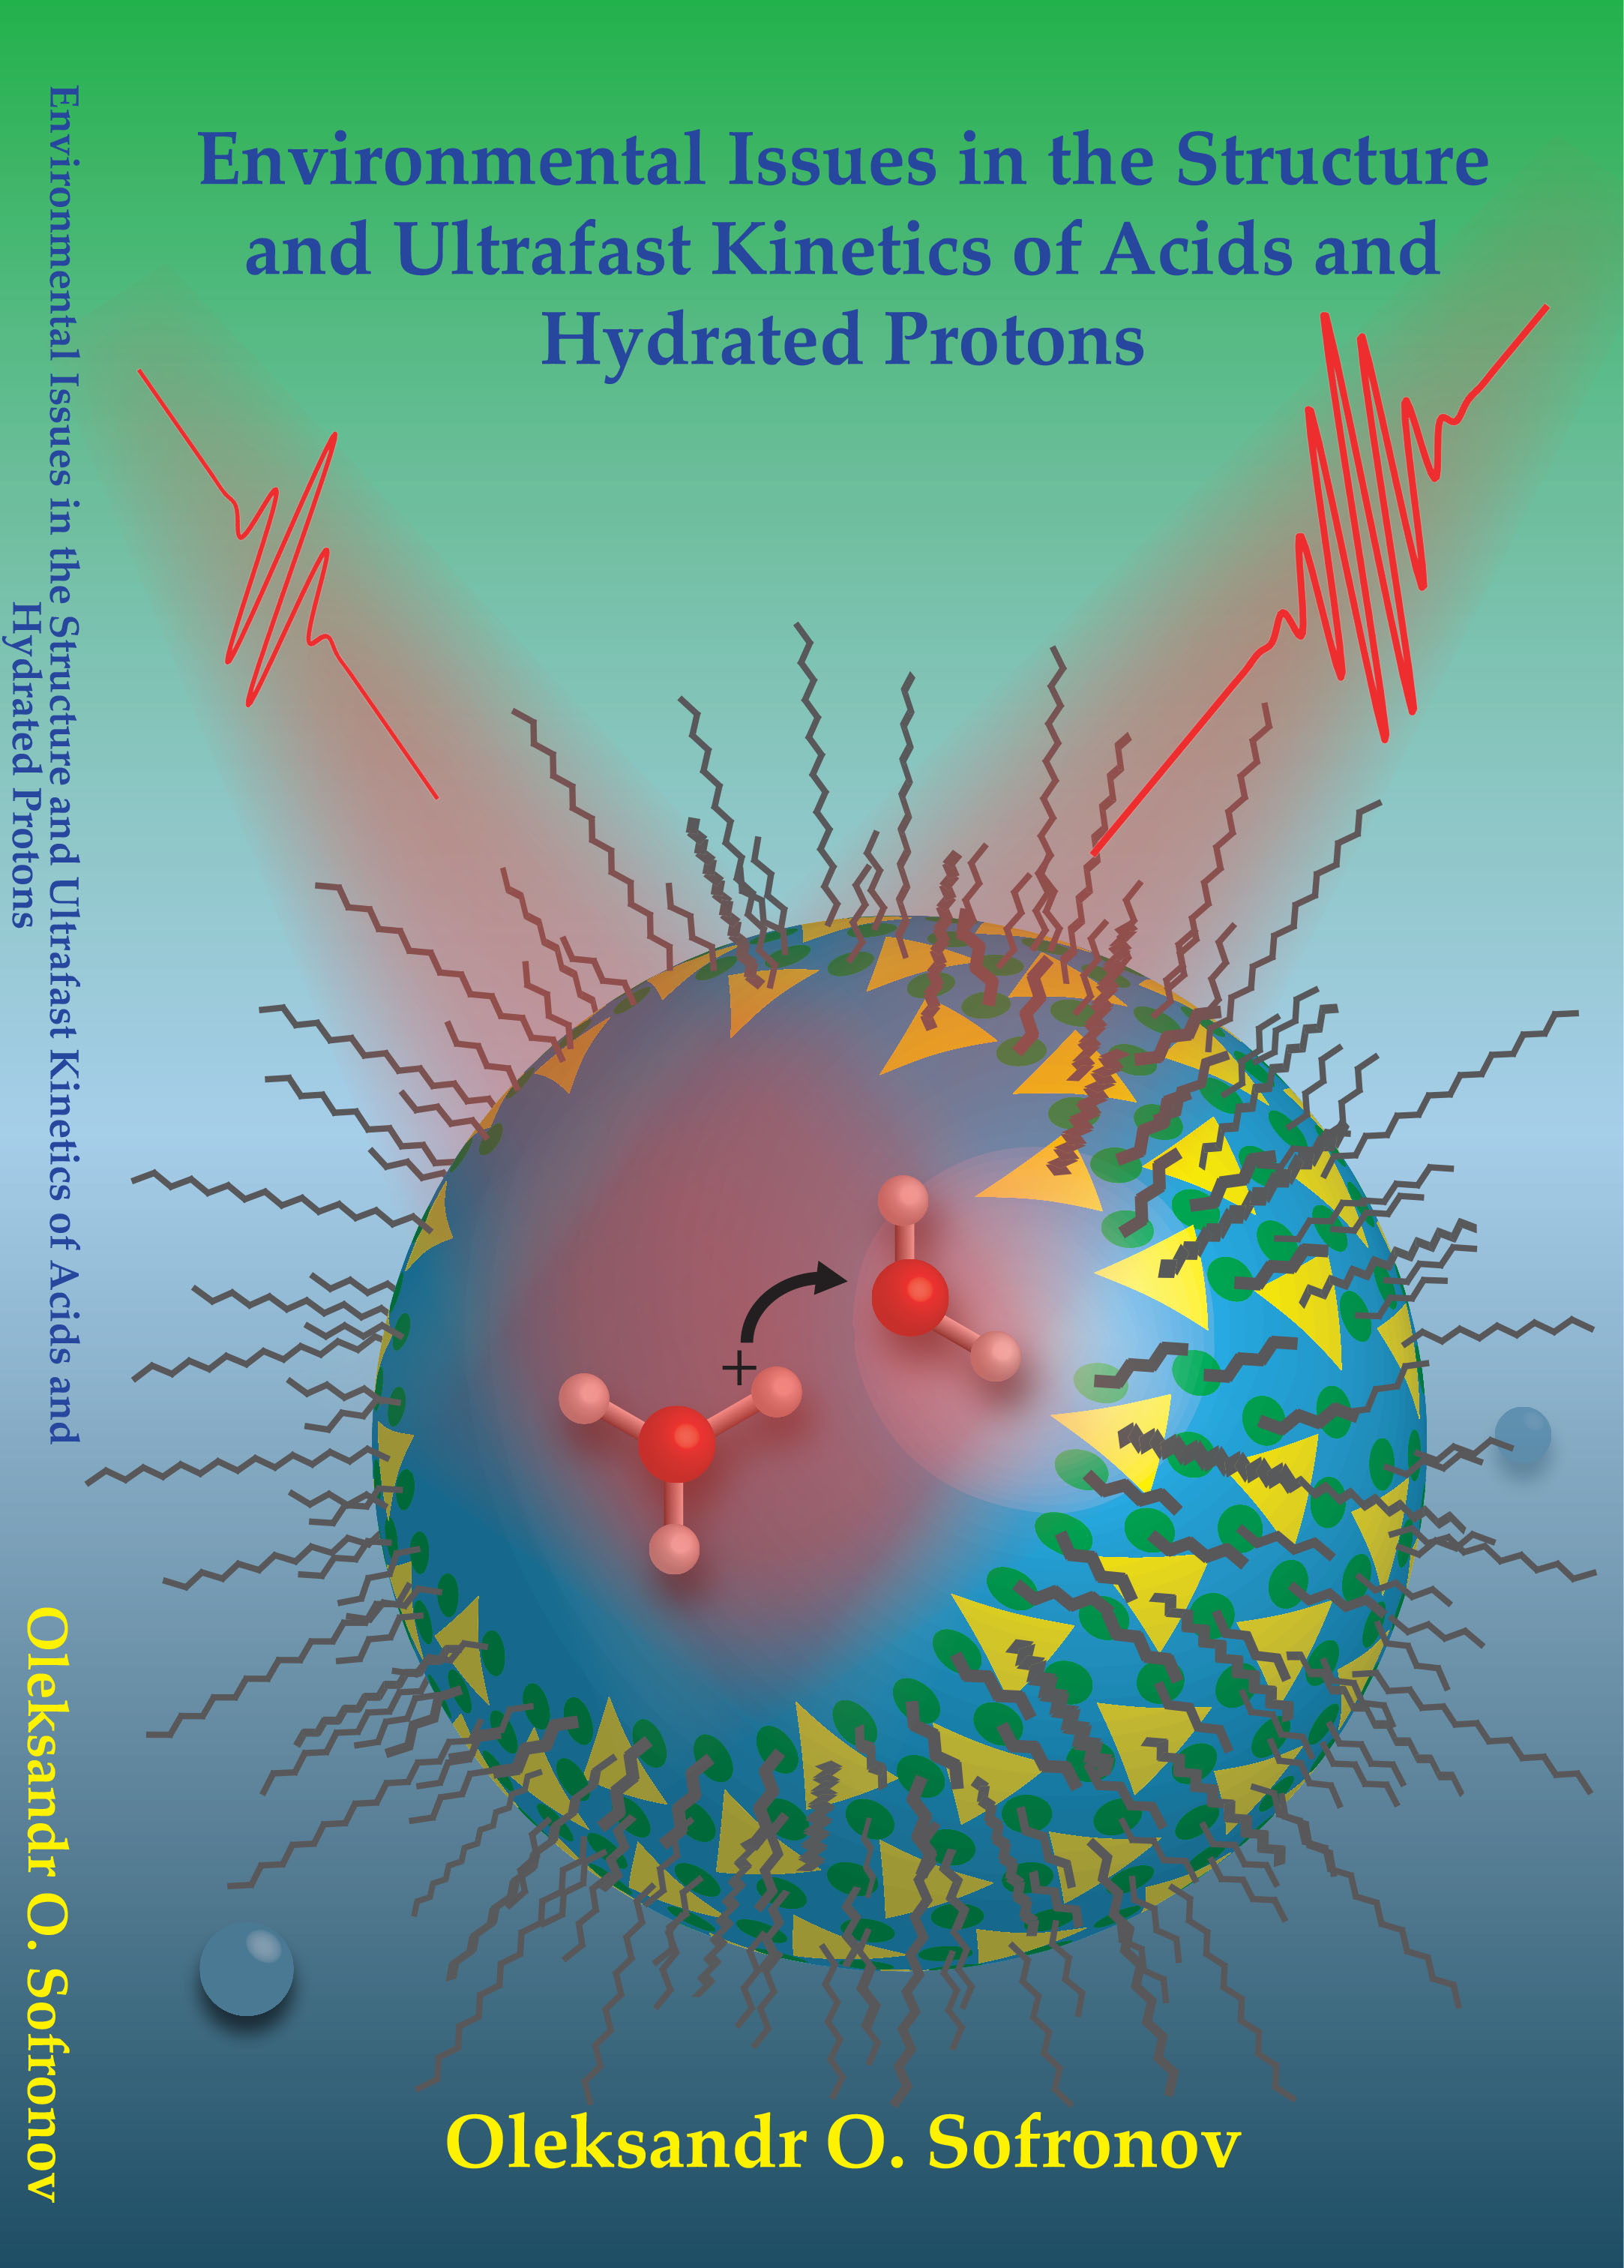 Cover of Environmental Issues in the Structure and Ultrafast Kinetics of Acids and Hydrated Protons